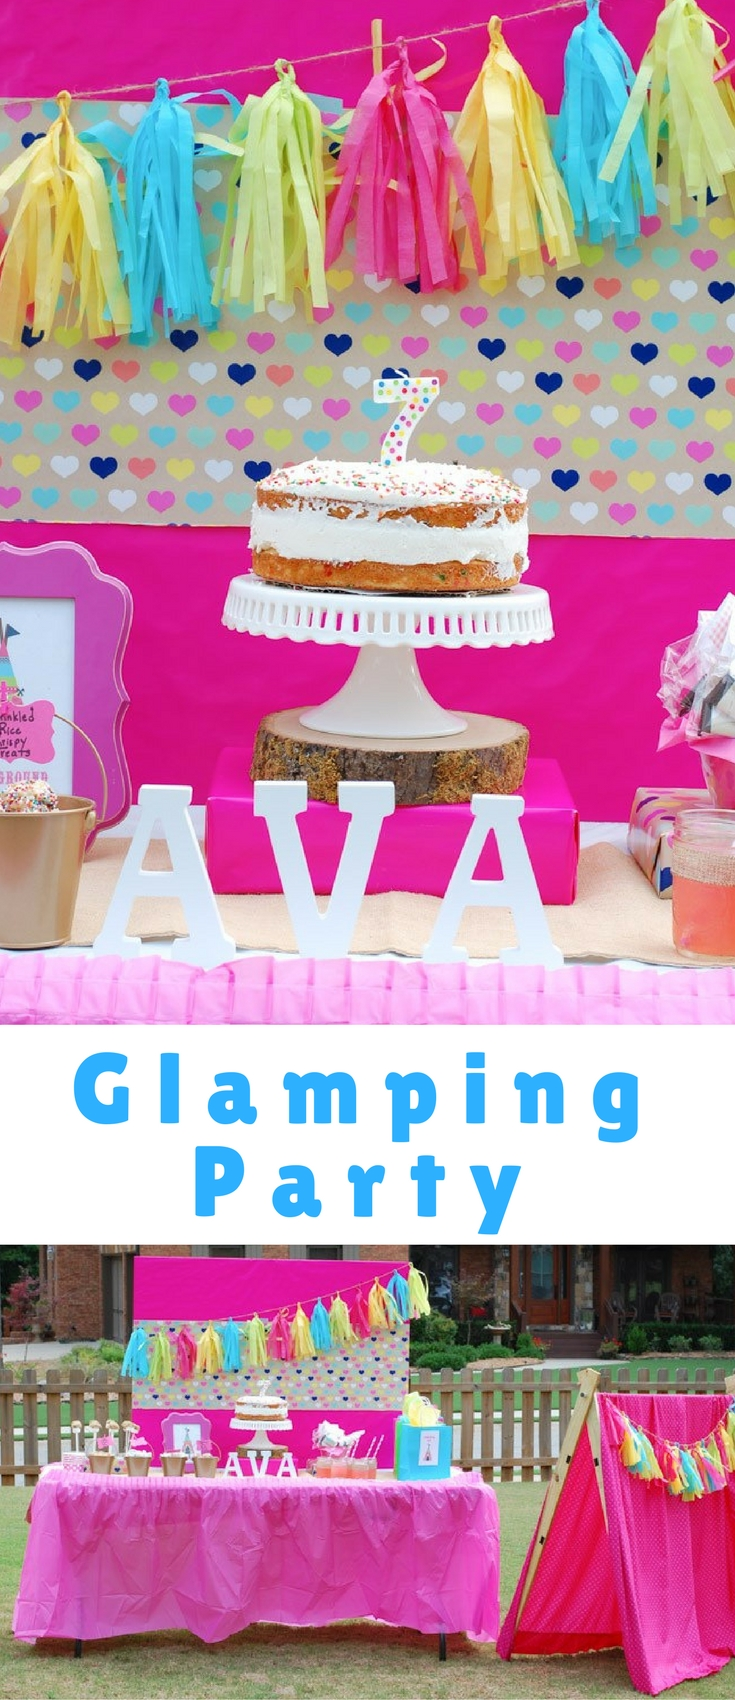 Summer is a perfect season for a birthday party with nature as your backdrop. This Glamping Party has everything you need to impress your guests.